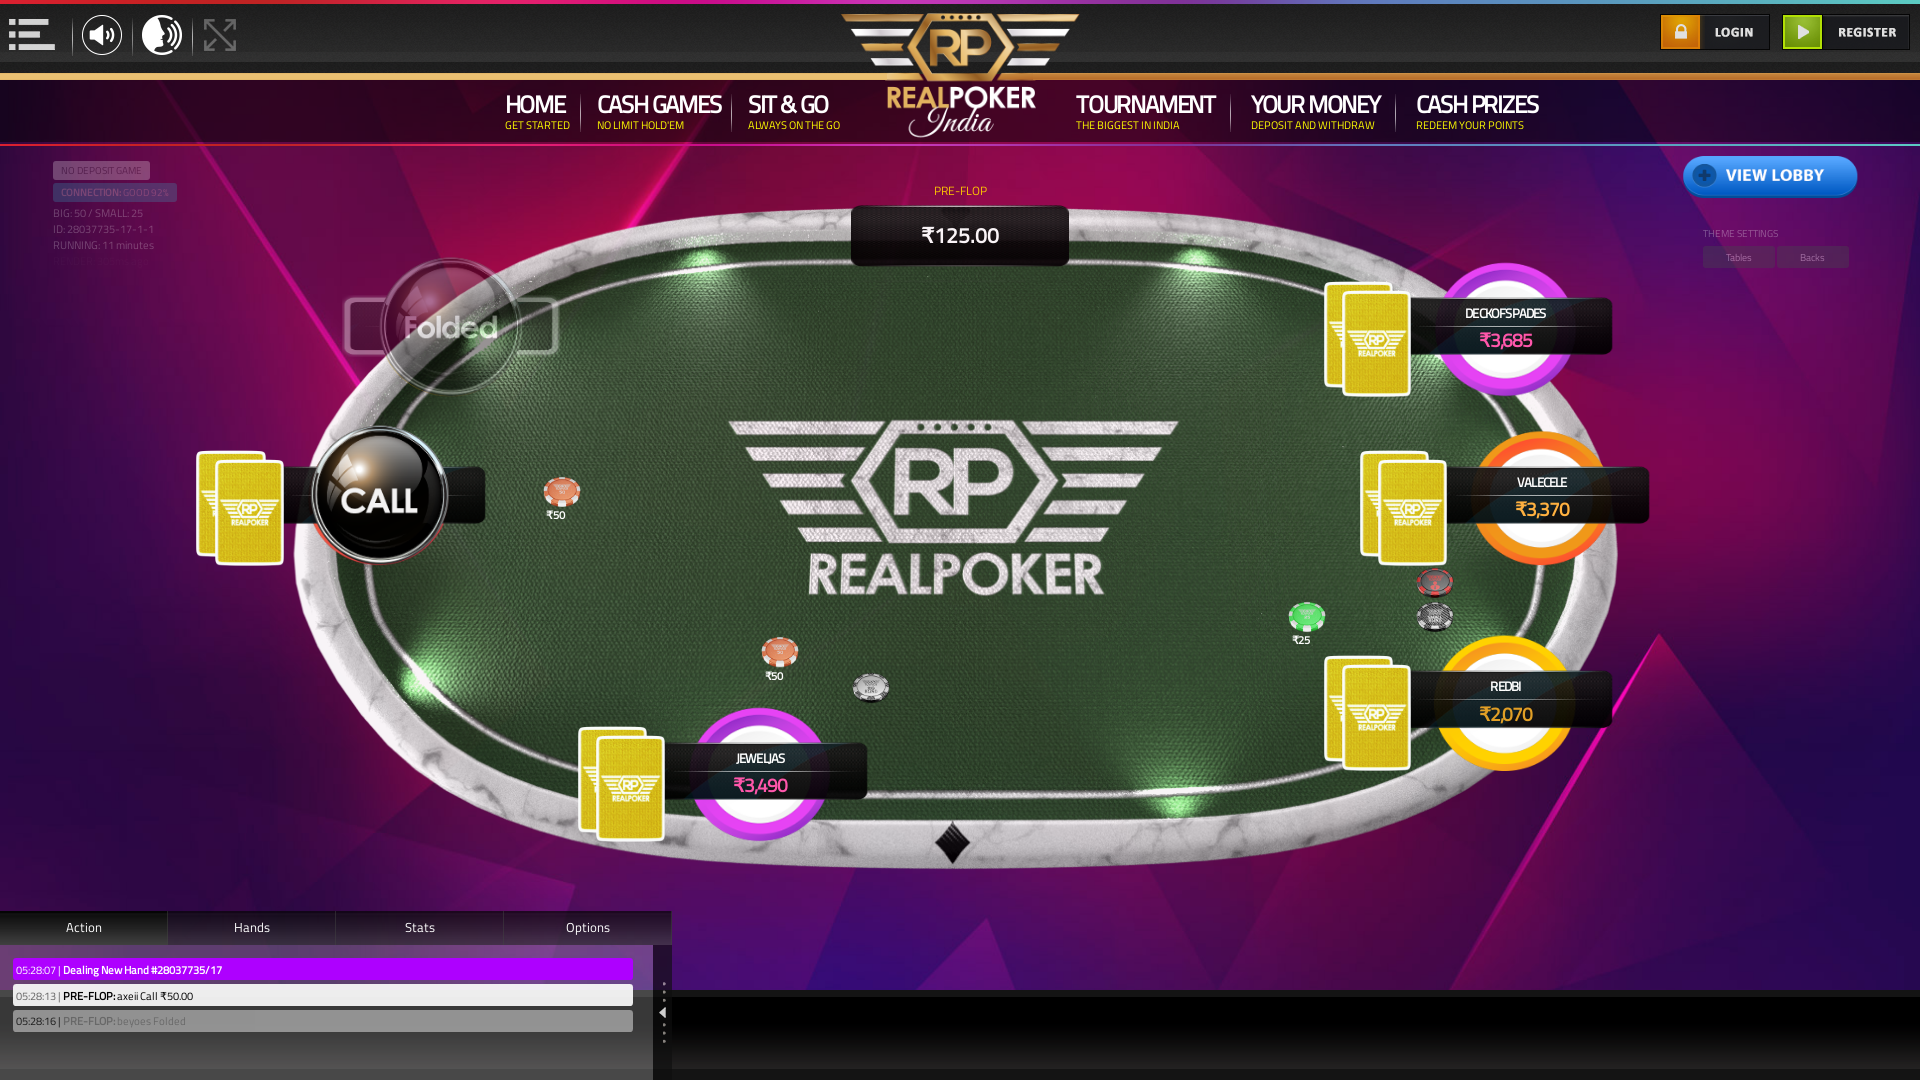 Vadodara Poker Website 10 Player